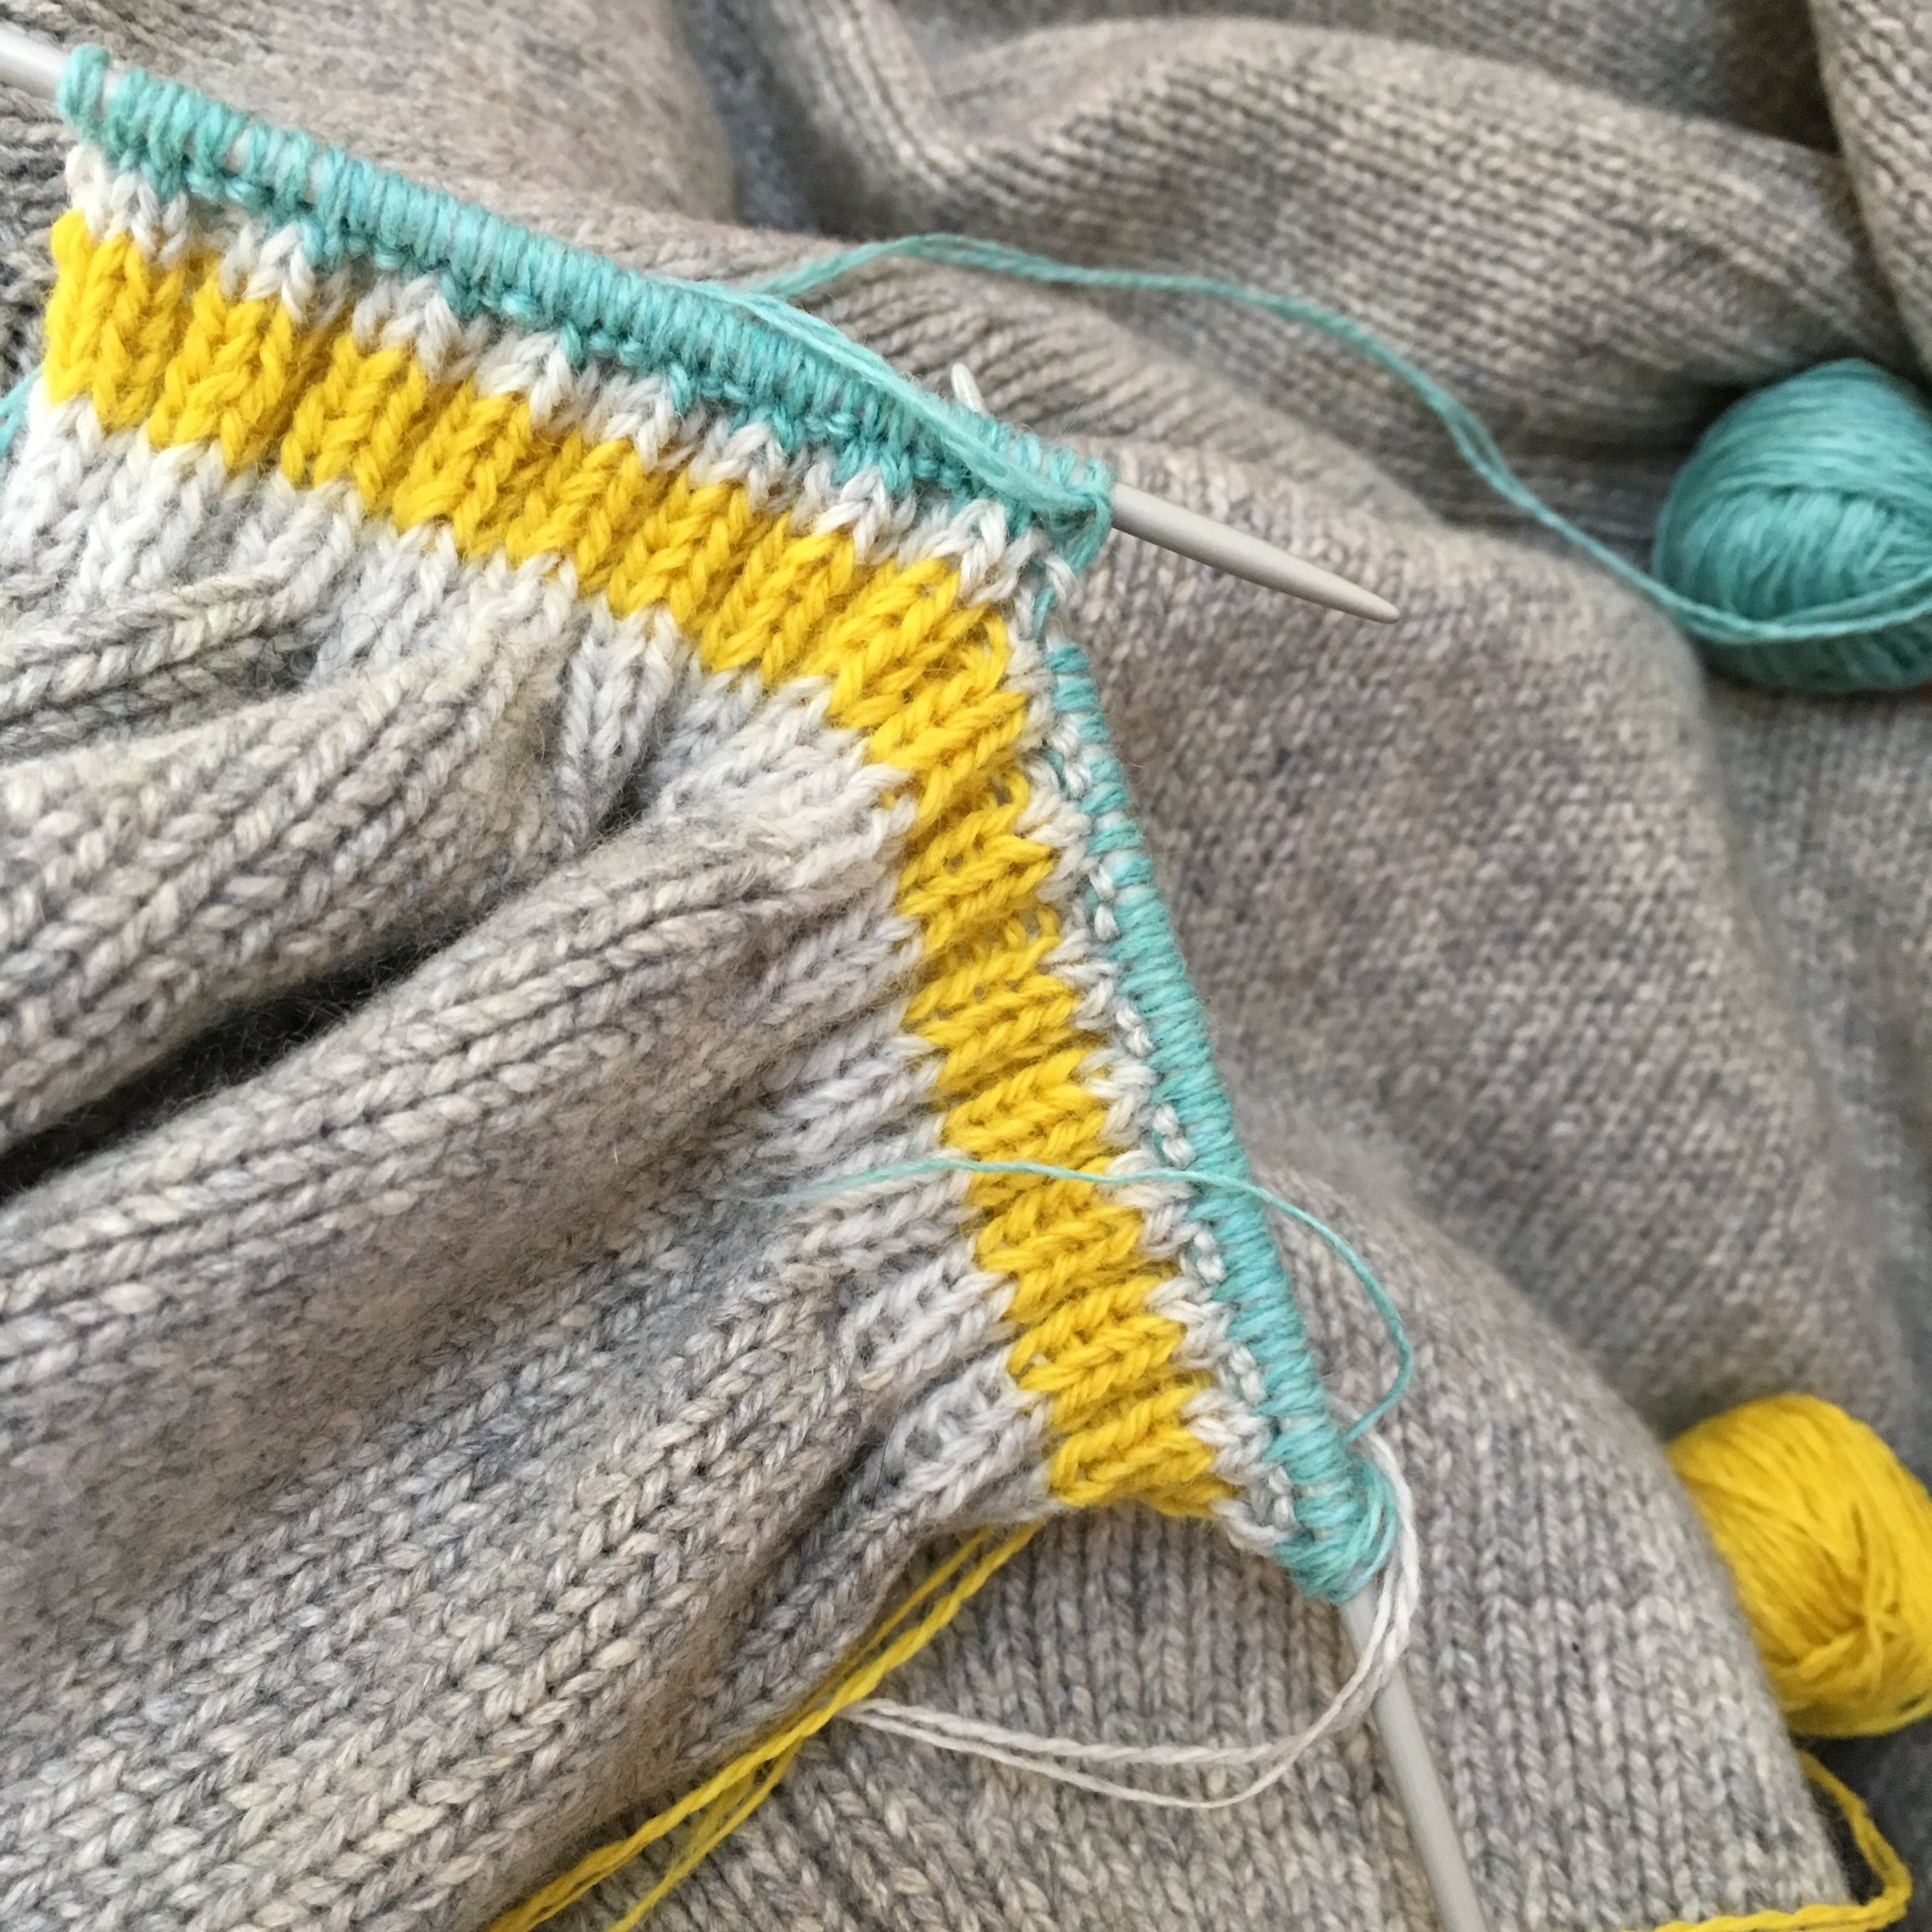 The other sleeve... knitting some bright stripes!